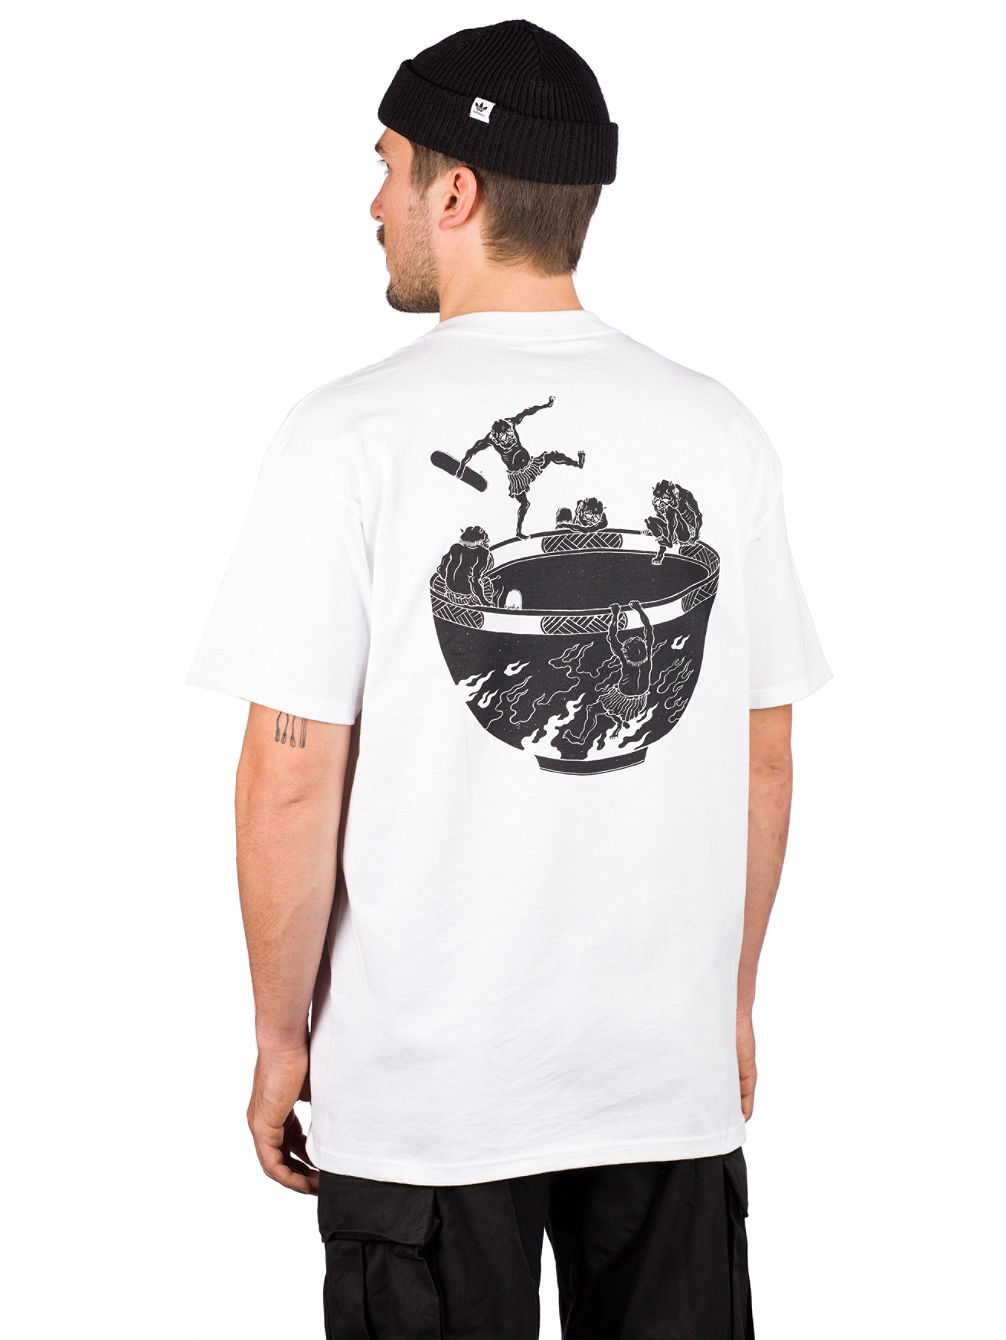 Devil Bowl T-Shirt